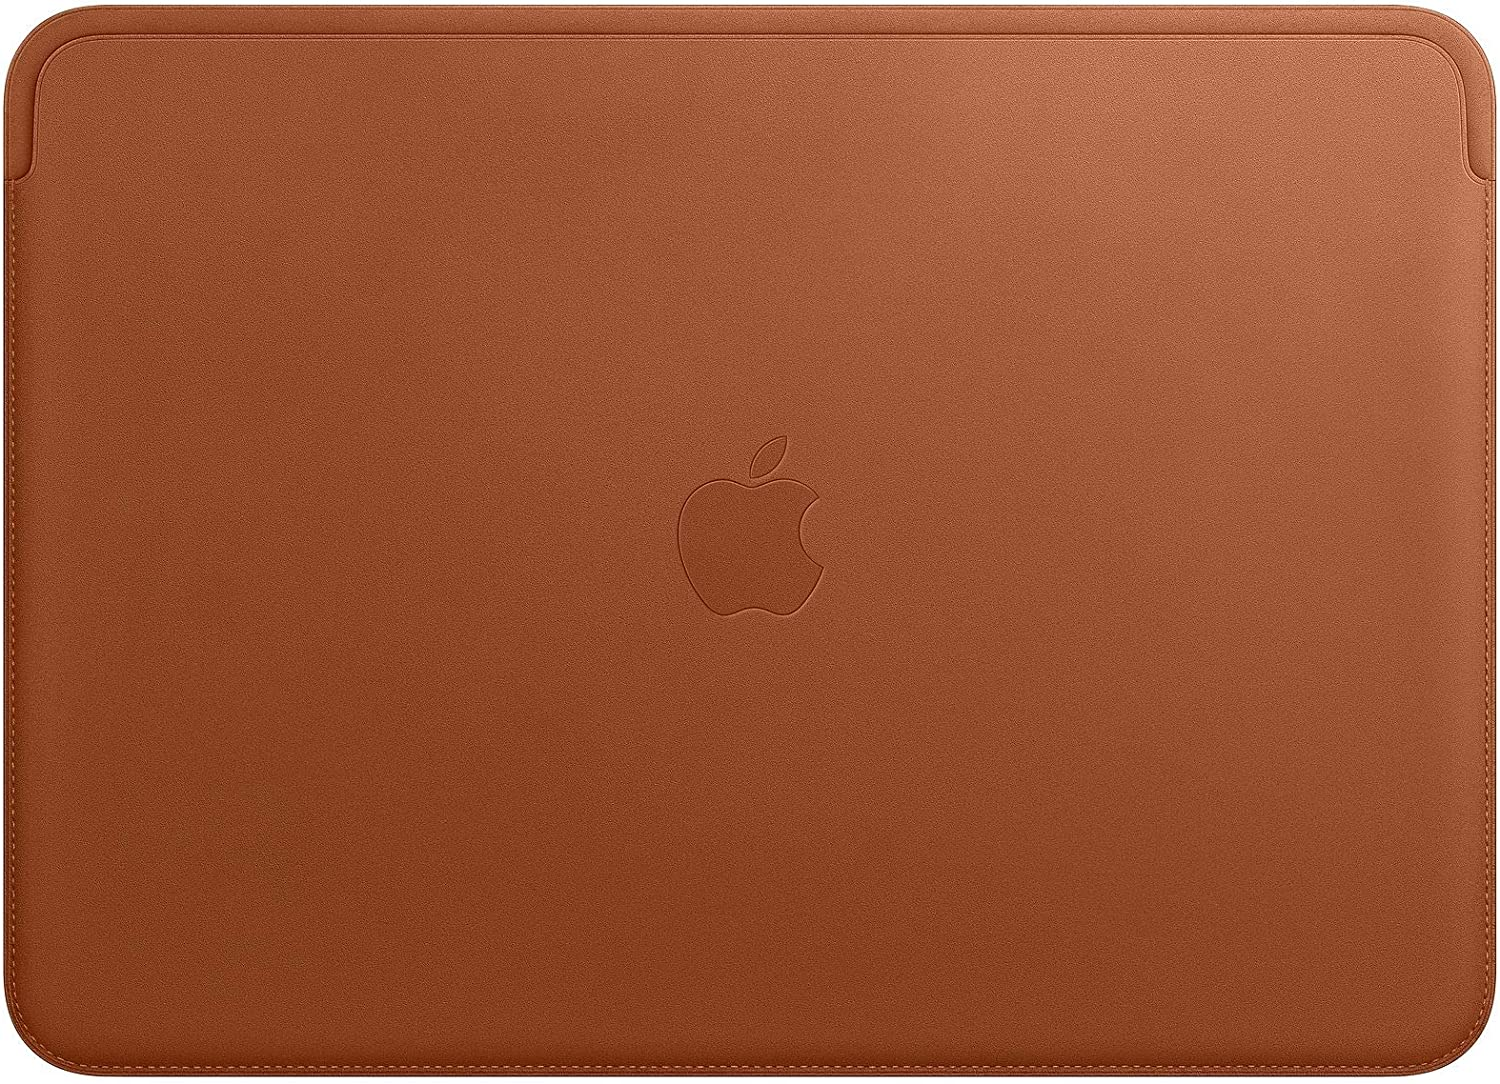 Apple Leather Sleeve (for 12-inch MacBook) - Saddle Brown